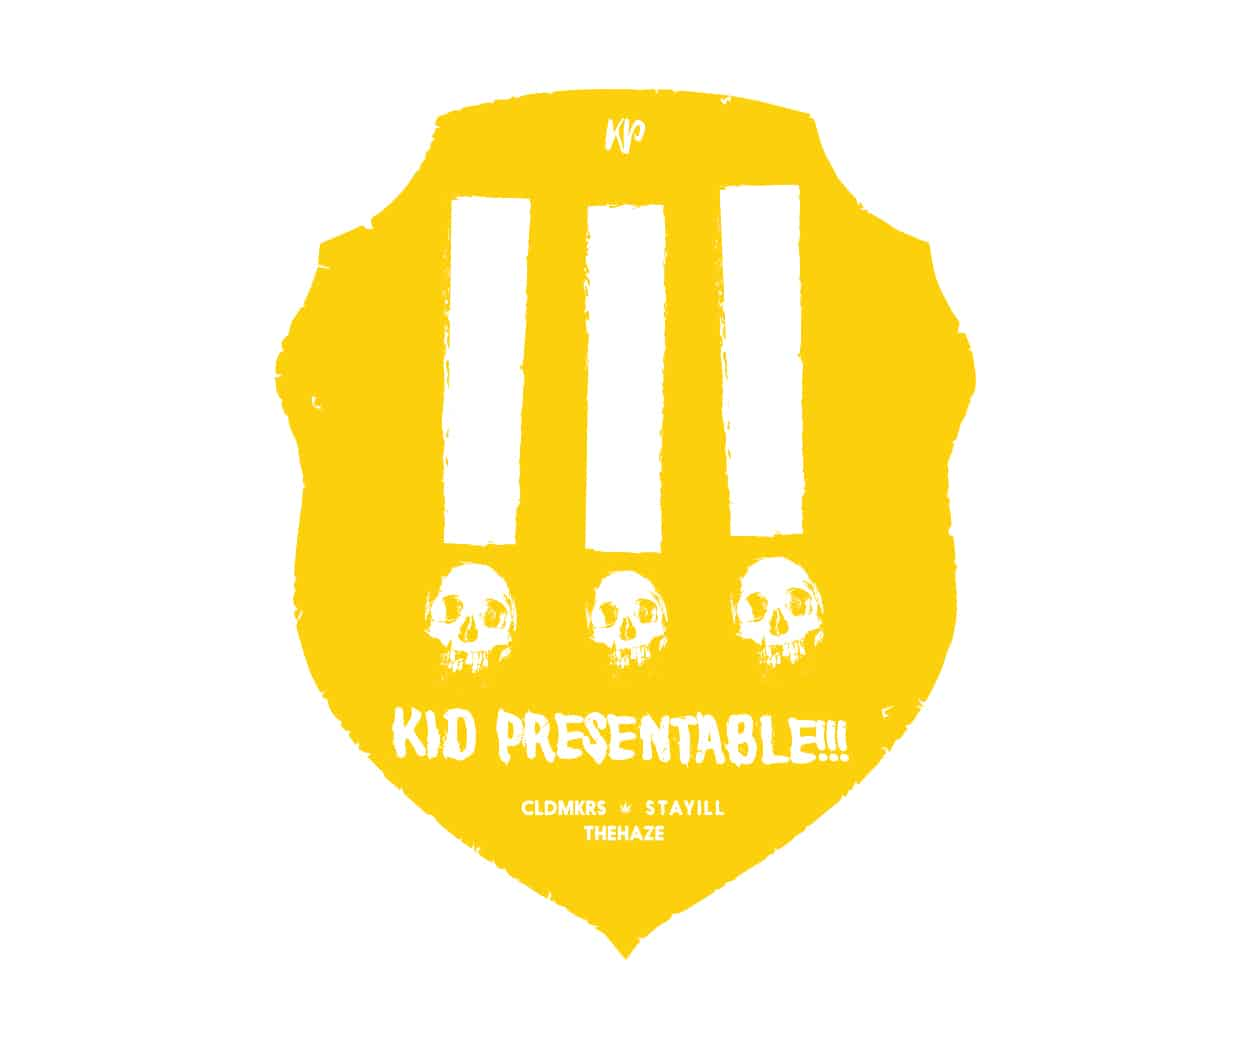 kid presentable - stay illuminated - t-shirt design - logo - badge